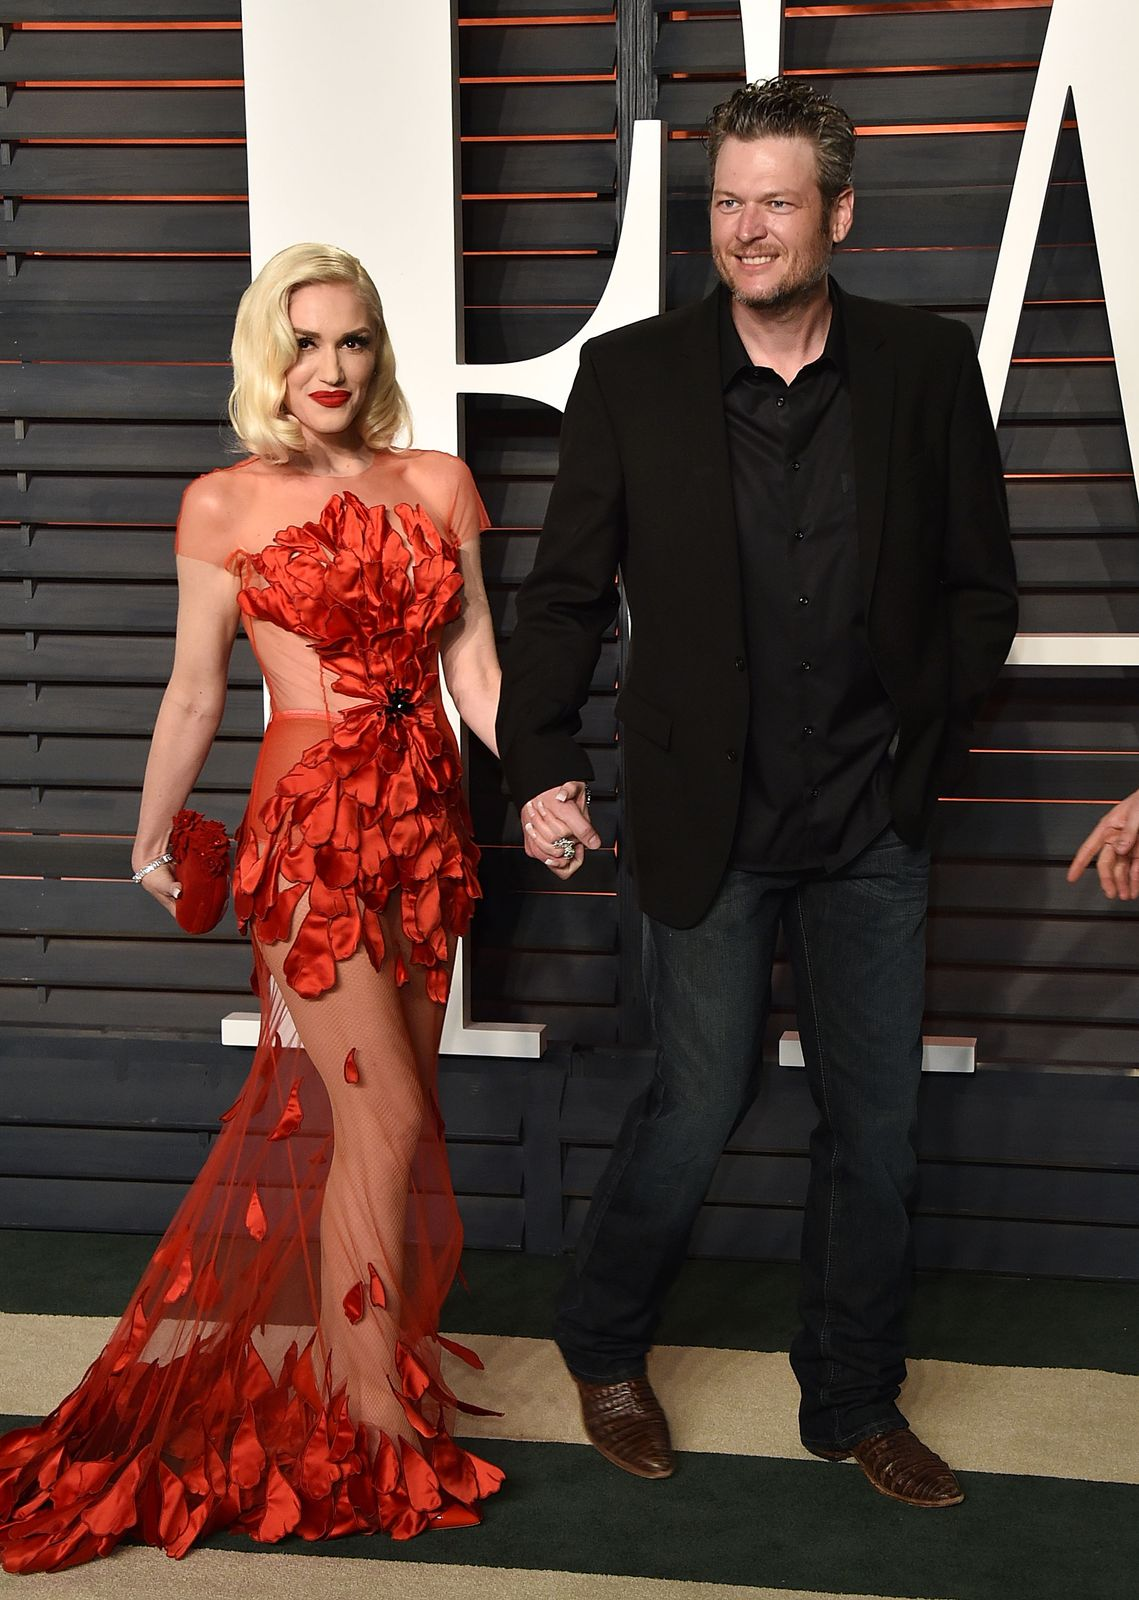 """Gwen Stefani and Blake Shelton at the """"Vanity Fair"""" Oscar Party hosted by Graydon Carter on February 28, 2016, in Beverly Hills, California 